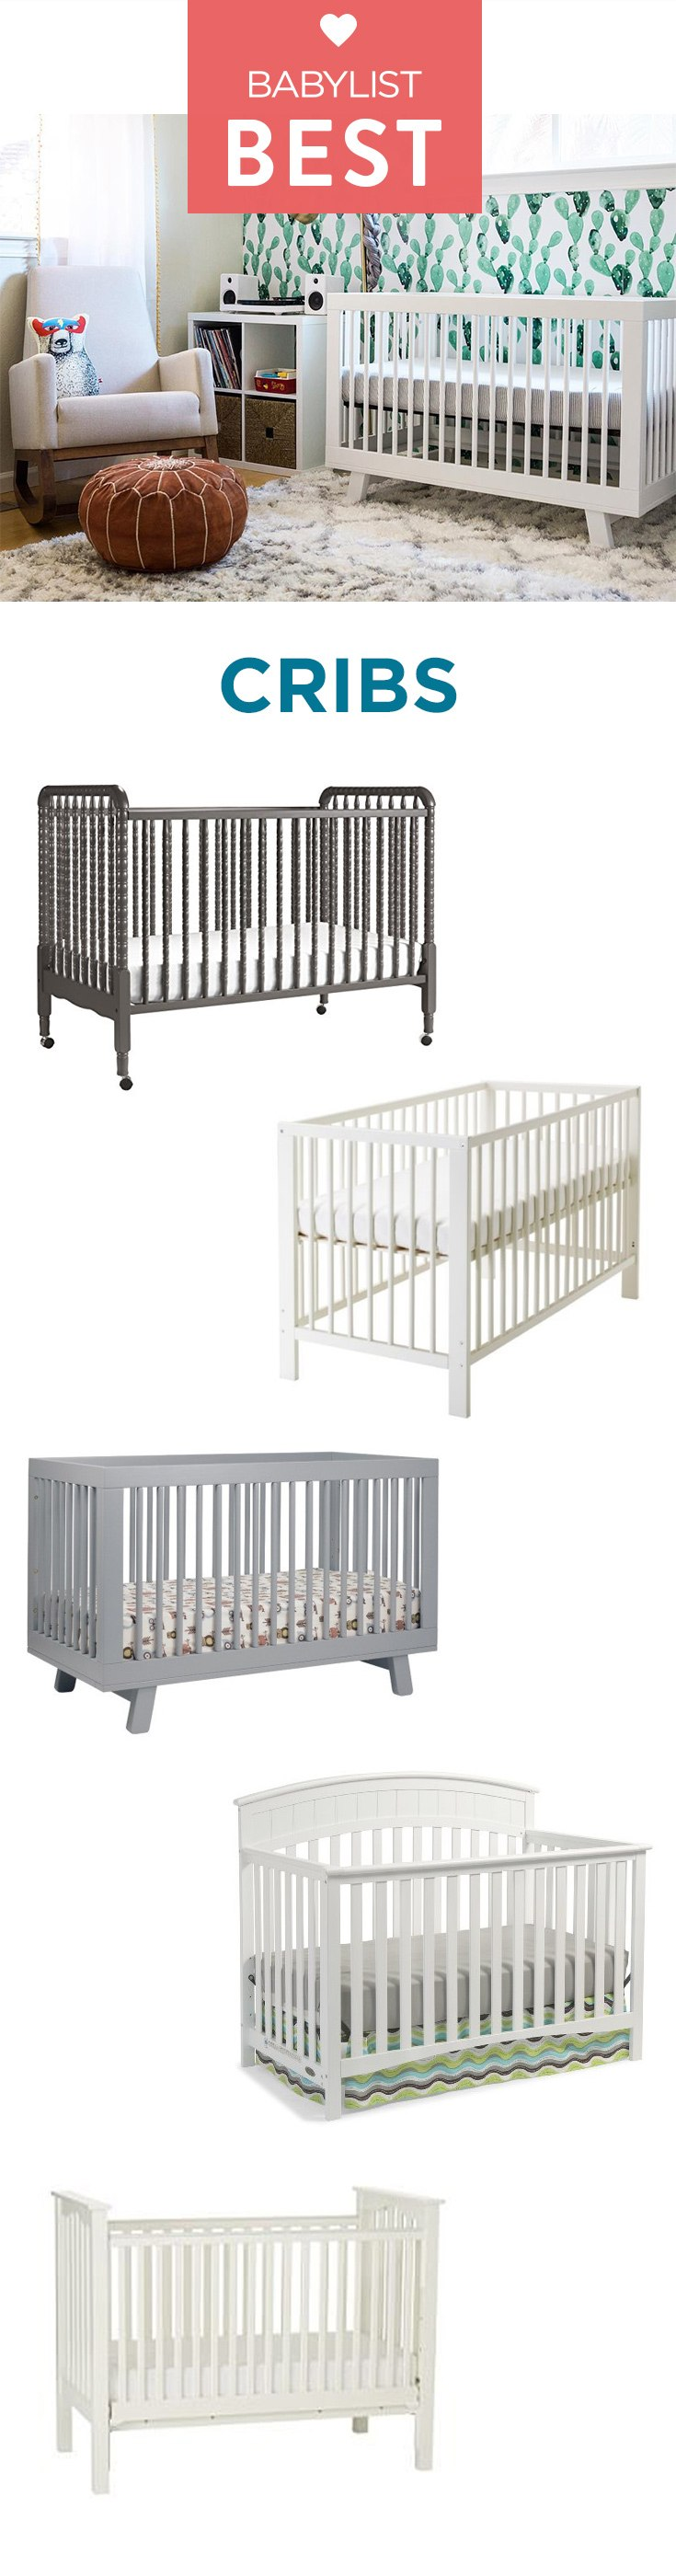 The crib that helps your child sleep peacefully is the crib that helps you sleep peacefully.